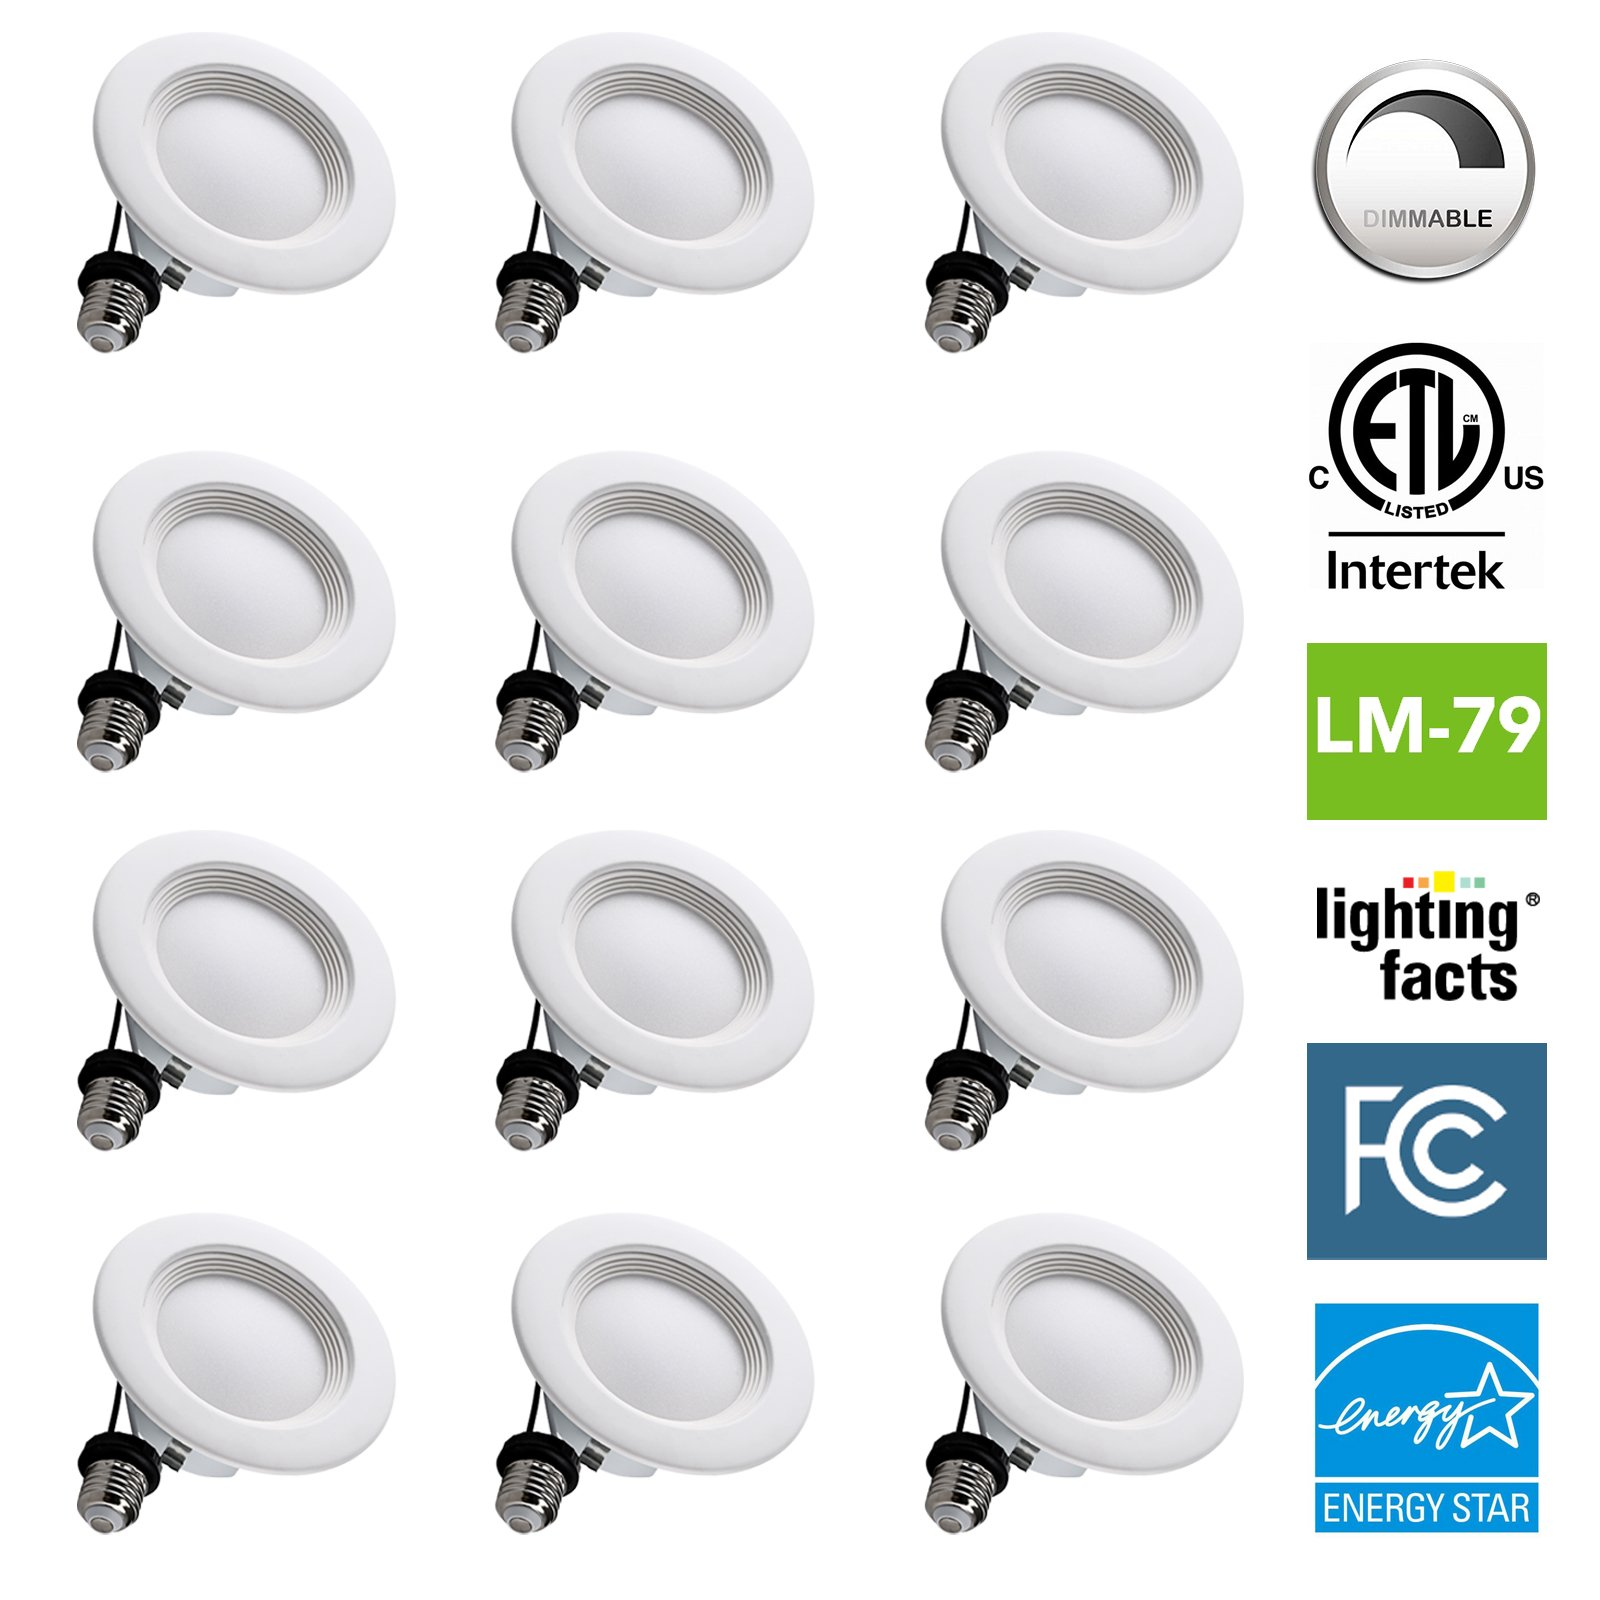 12 Pack NASUN 4 Inch Dimmable LED Downlight, ENERGY STAR, ETL, FCC, 9W, CRI80+, Recessed Retrofit Downlight Lighting Fixture - (Pack of 12), 5 Year Warranty